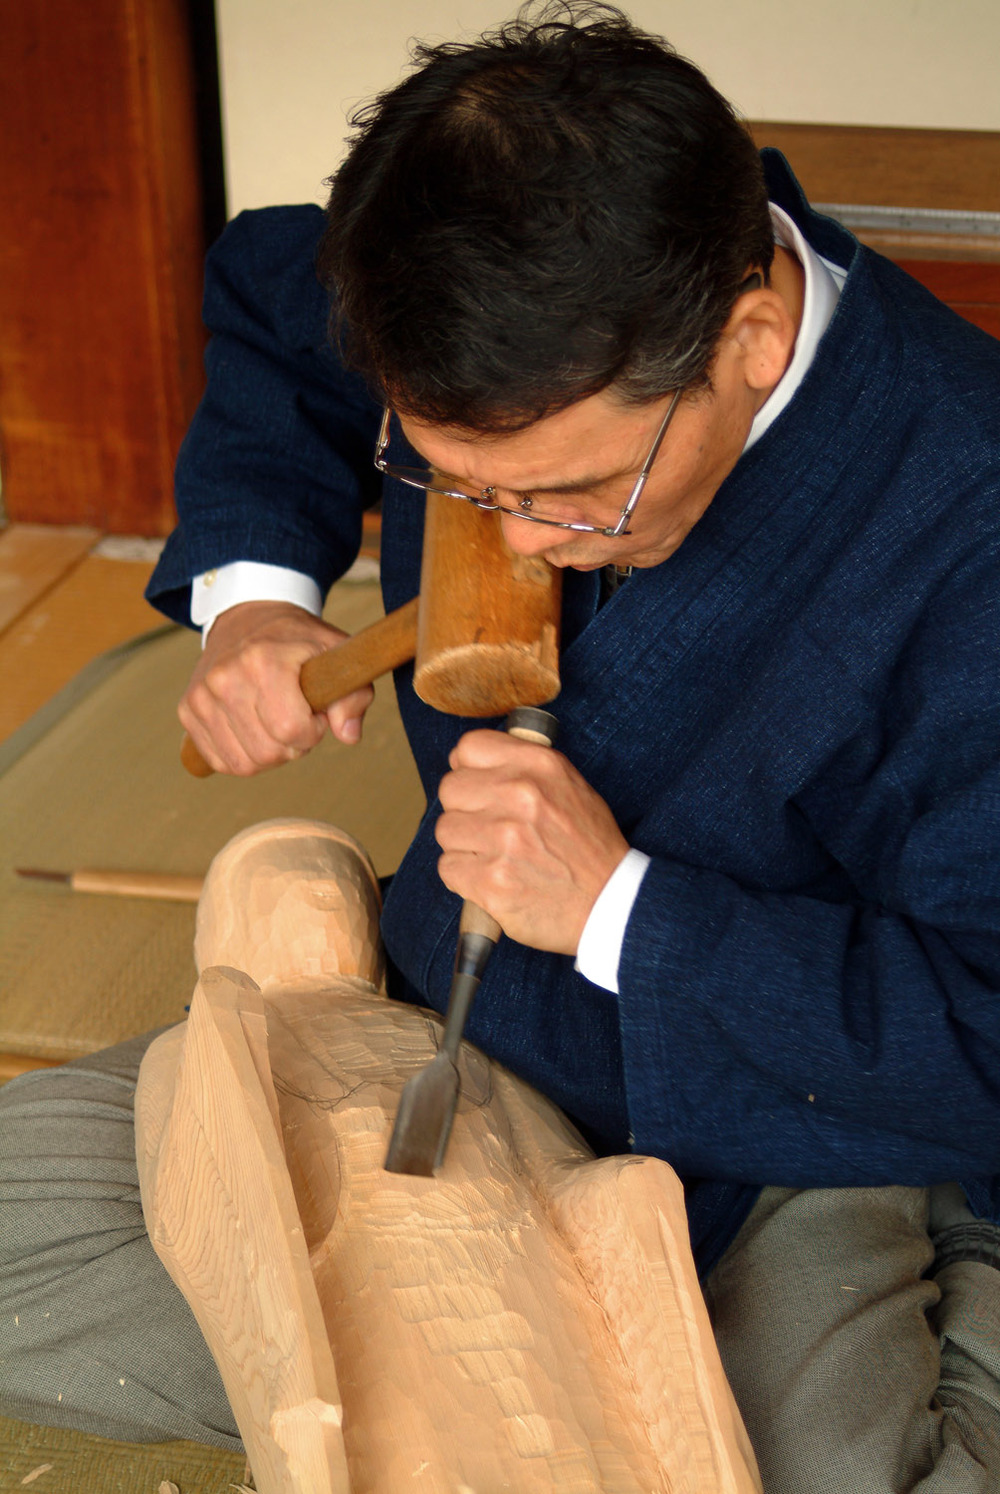 Sculptor carving Buddha figure